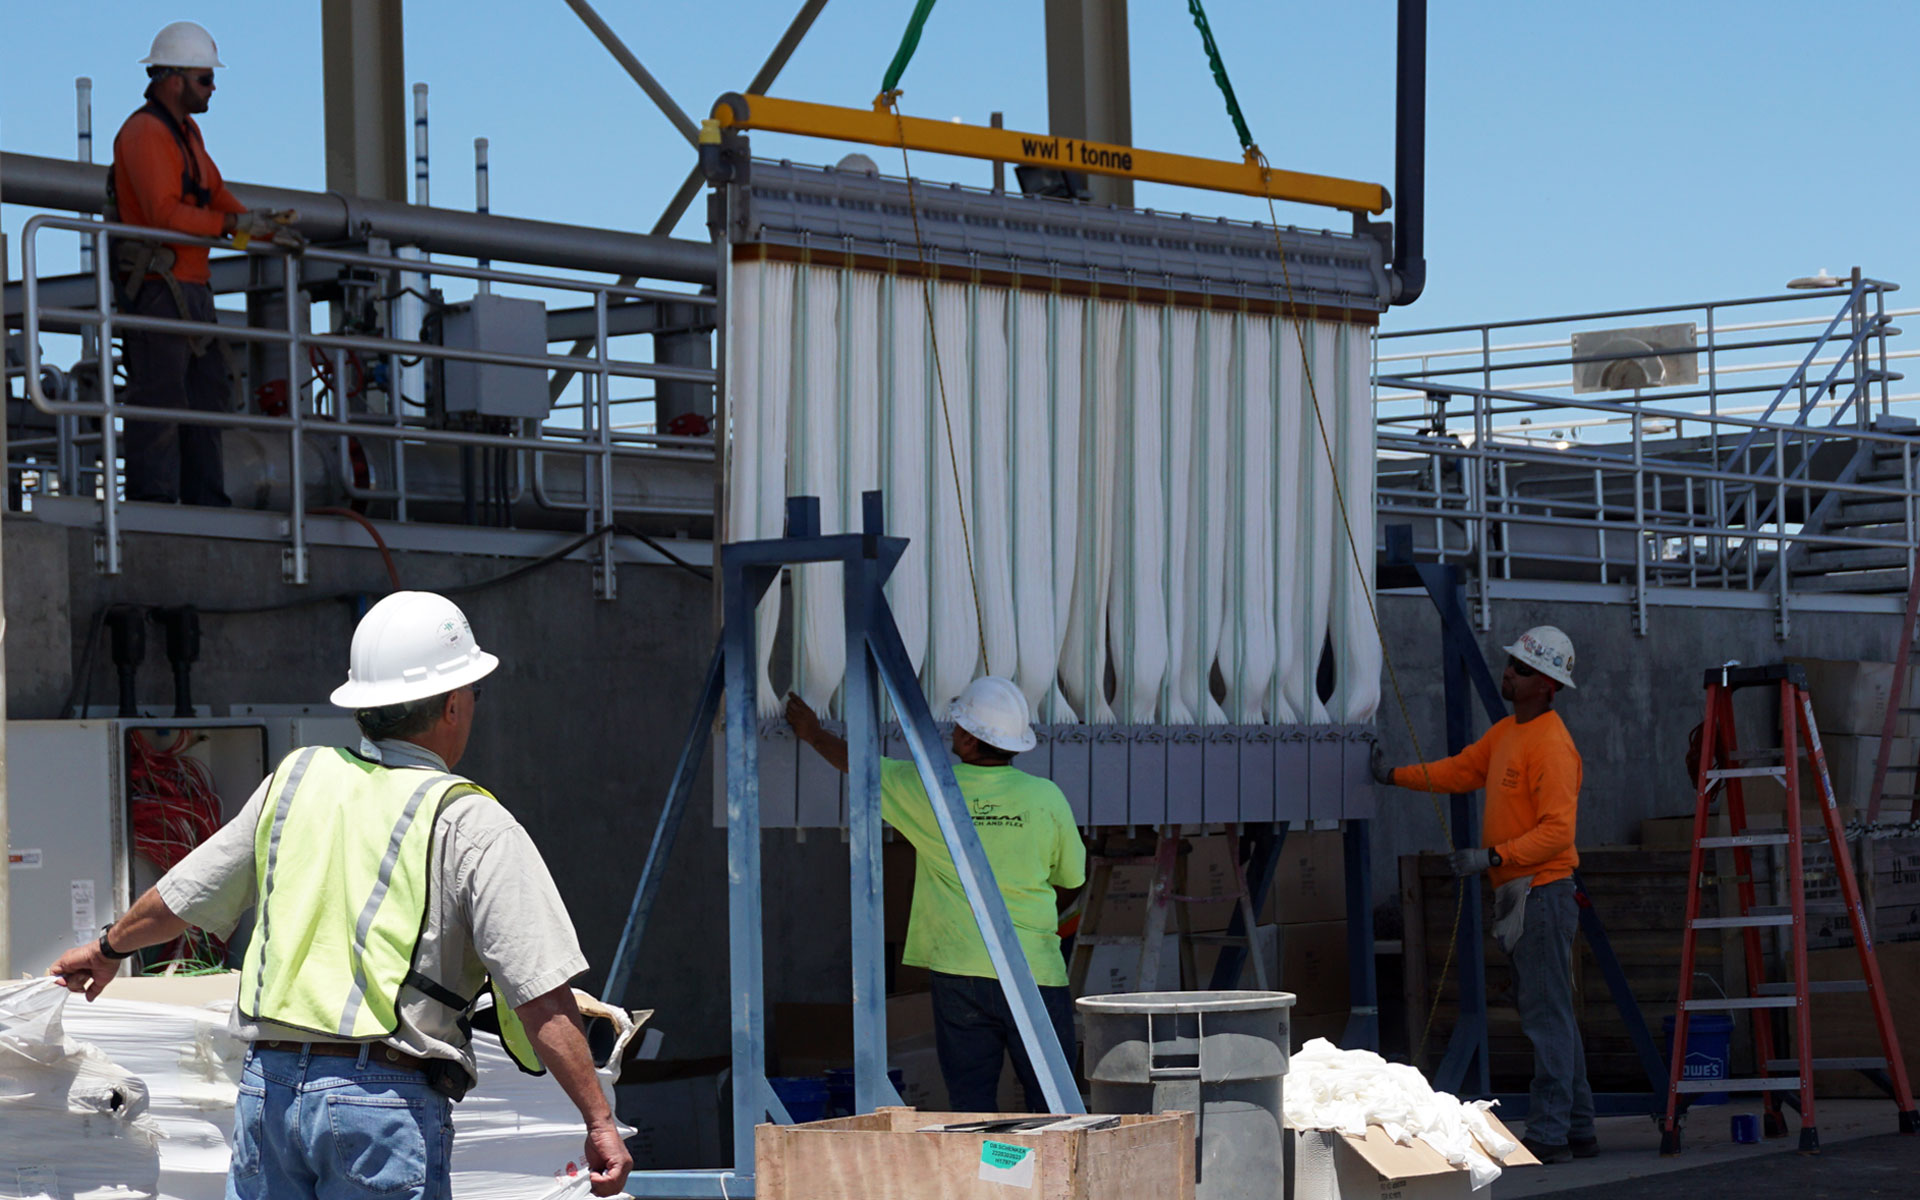 New filtering equipment is installed at the Modesto wastewater treament plant, part of a $150 million upgrade.